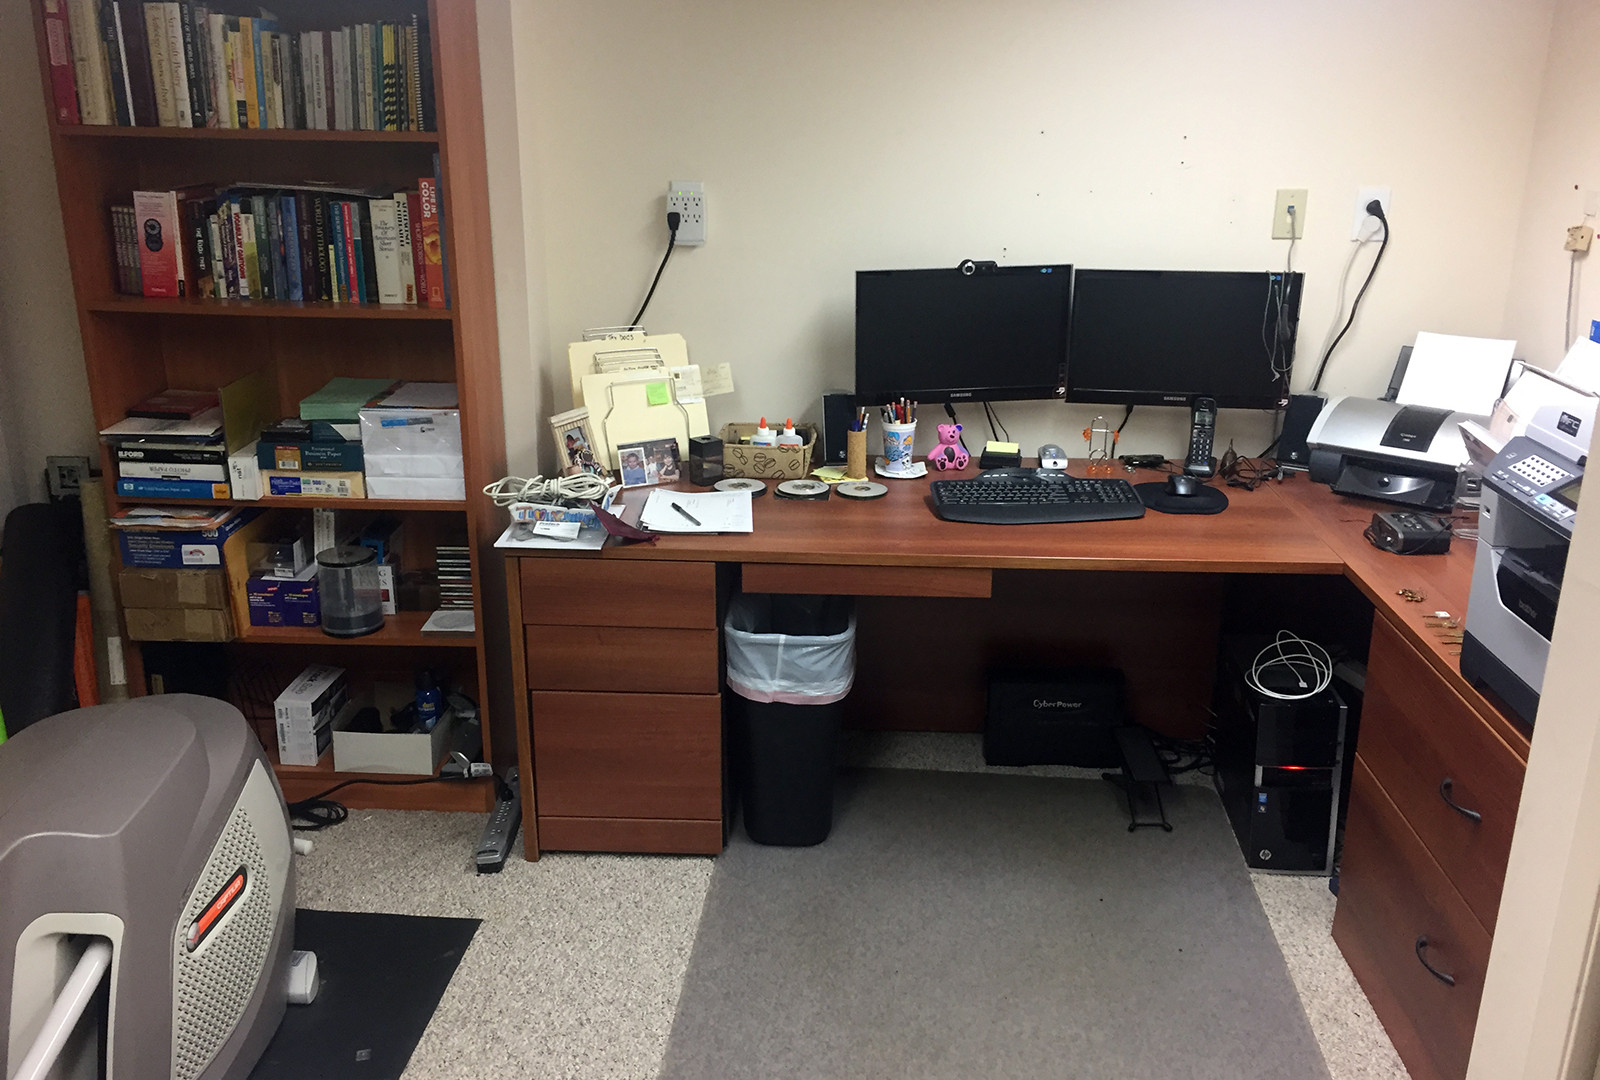 Home Office - After